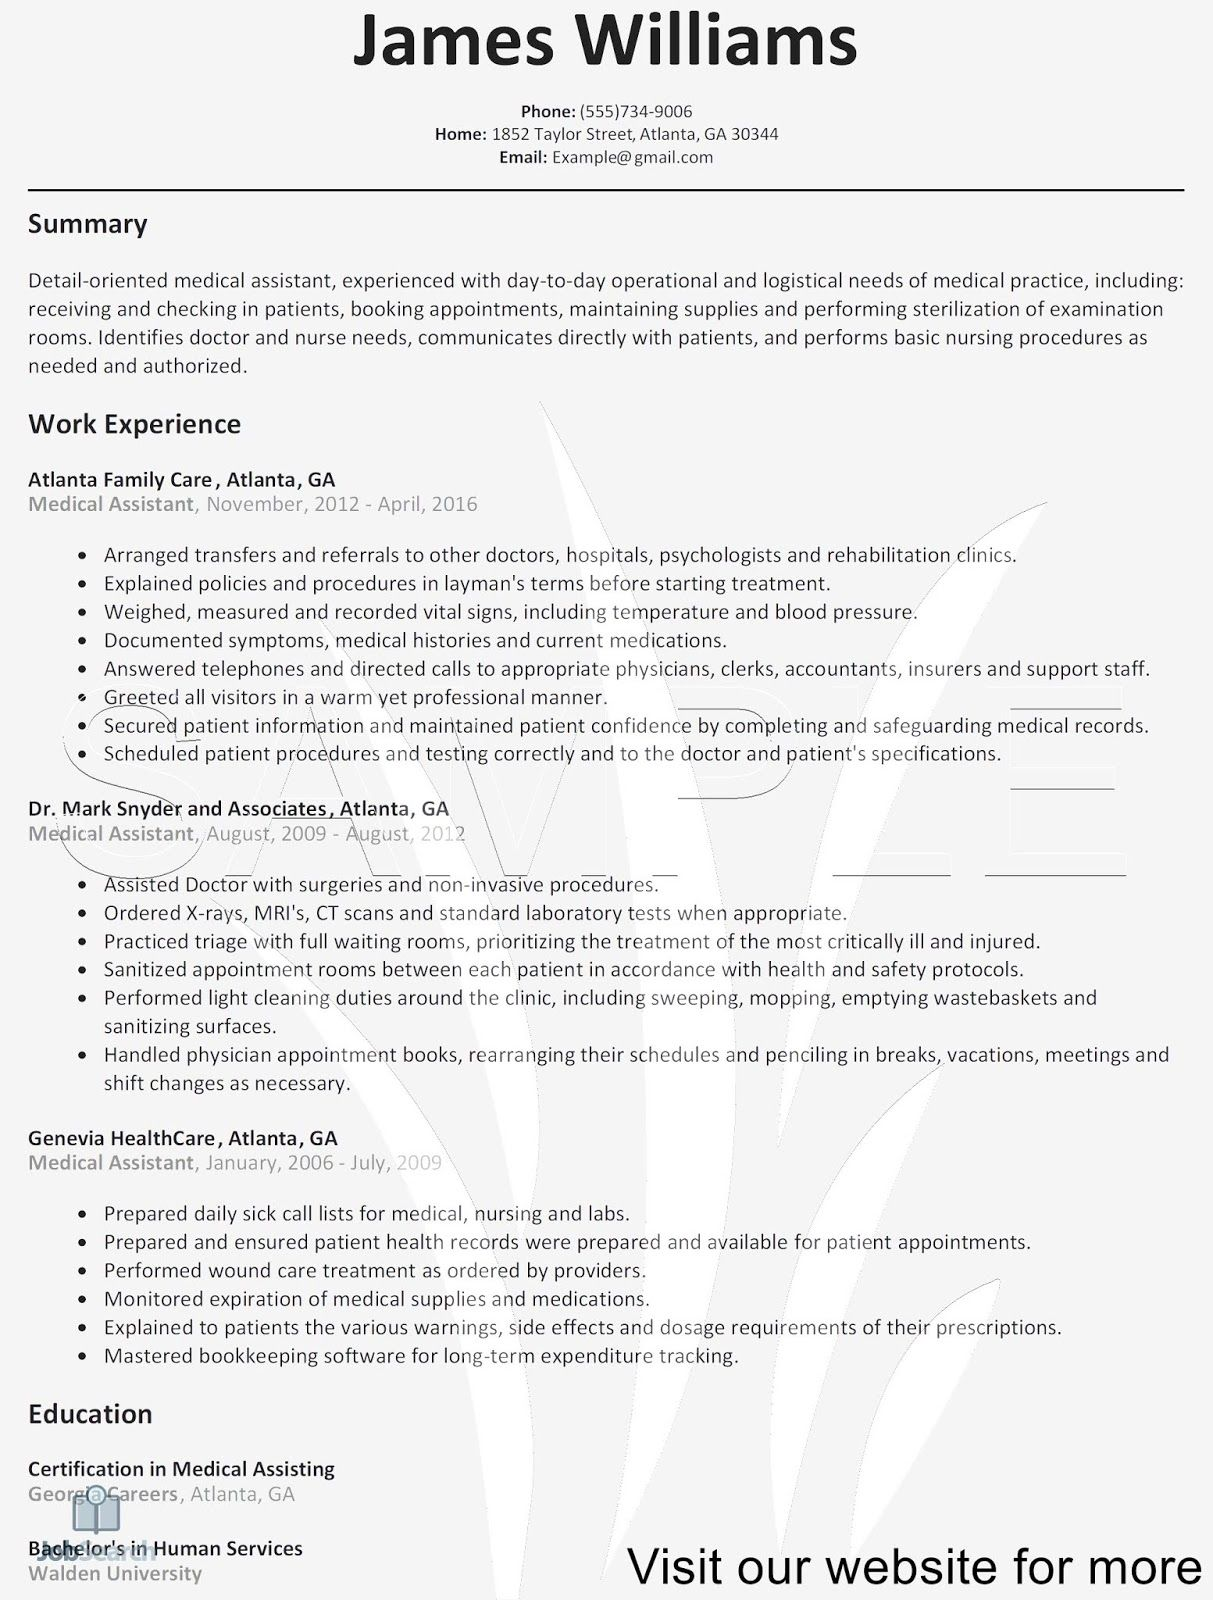 Sample Registered Nurse Resume Template 2020 in 2020 Job